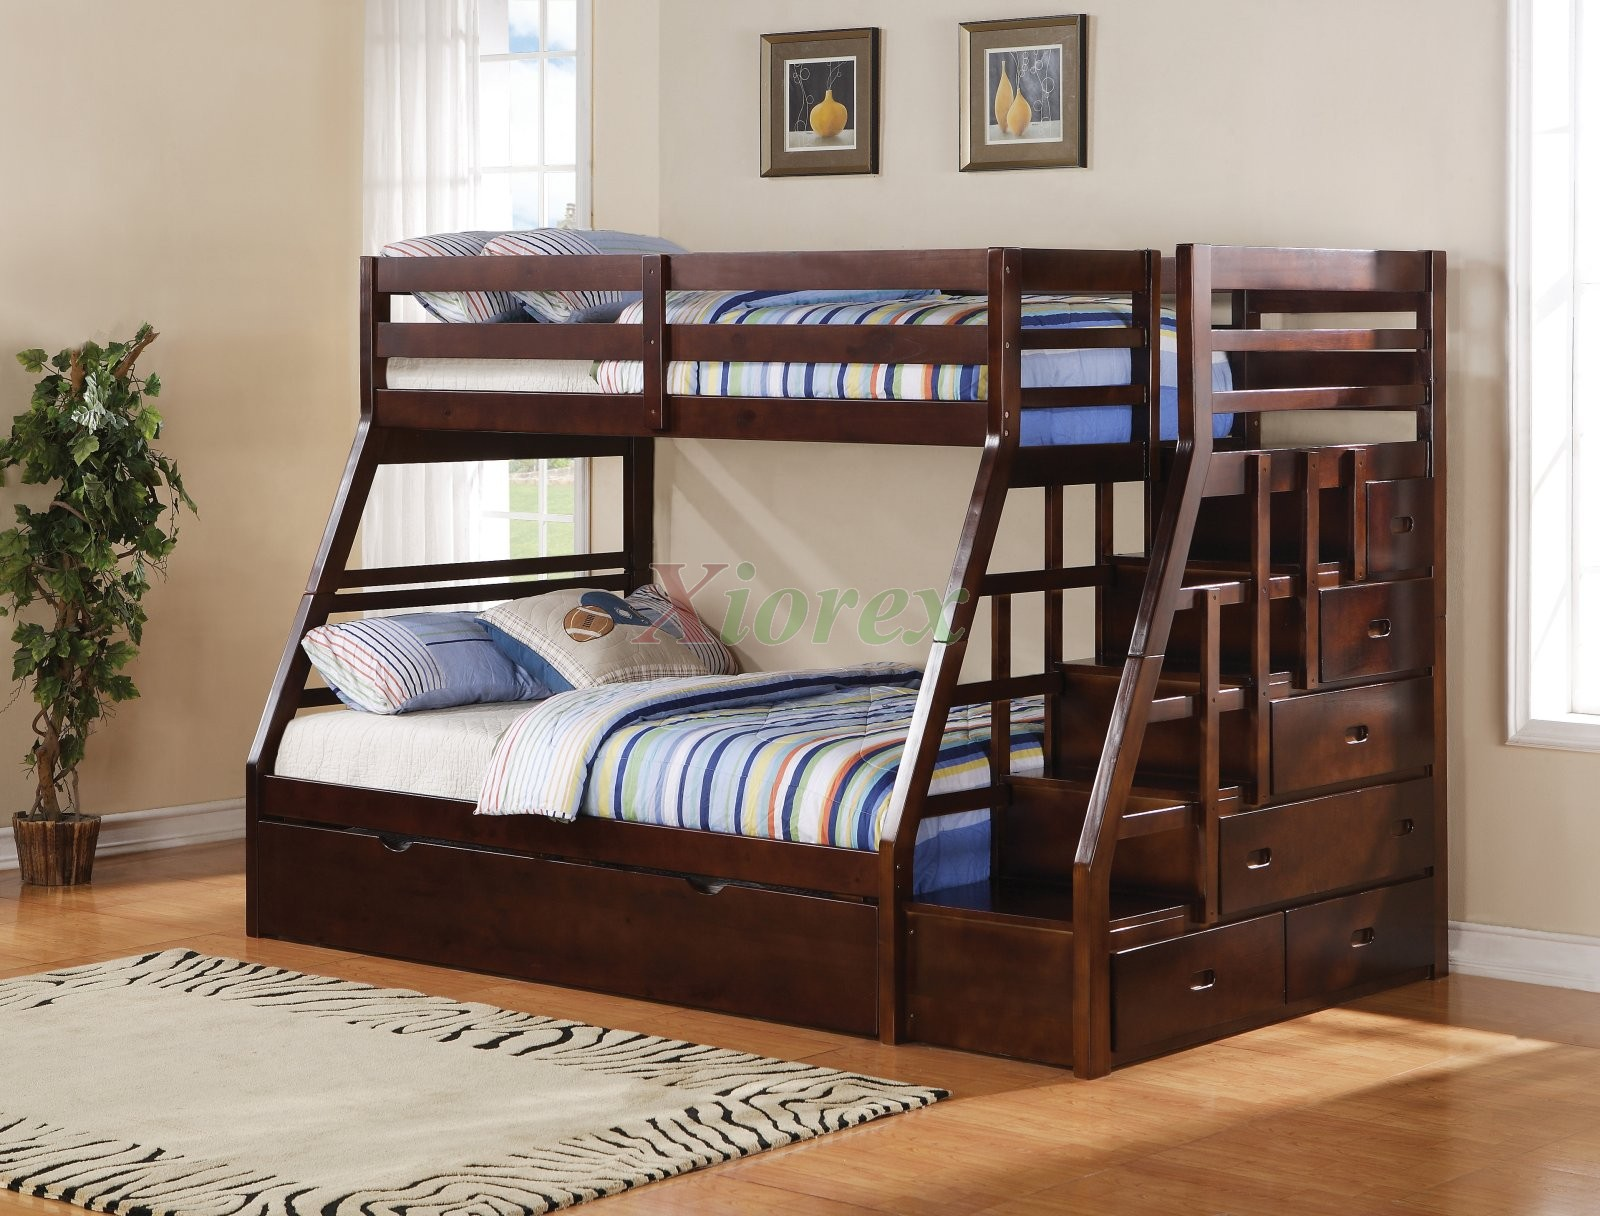 for sale. Top Childrens Bunk Beds with Stairs. Loft Bed with Stairs ...